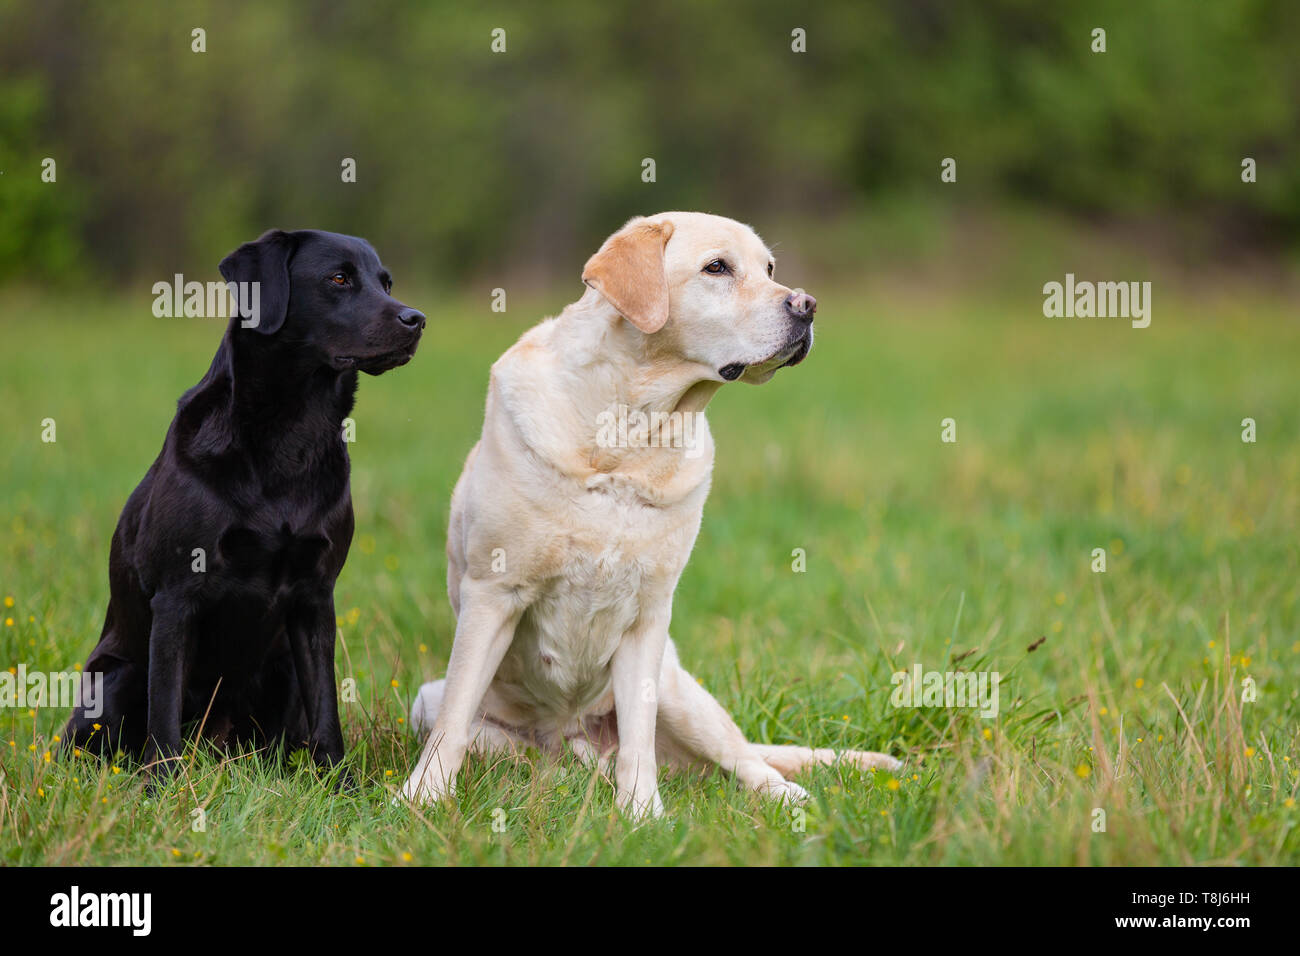 Two Labradors Retriver on a spring meadow. Small depth of field - Stock Image